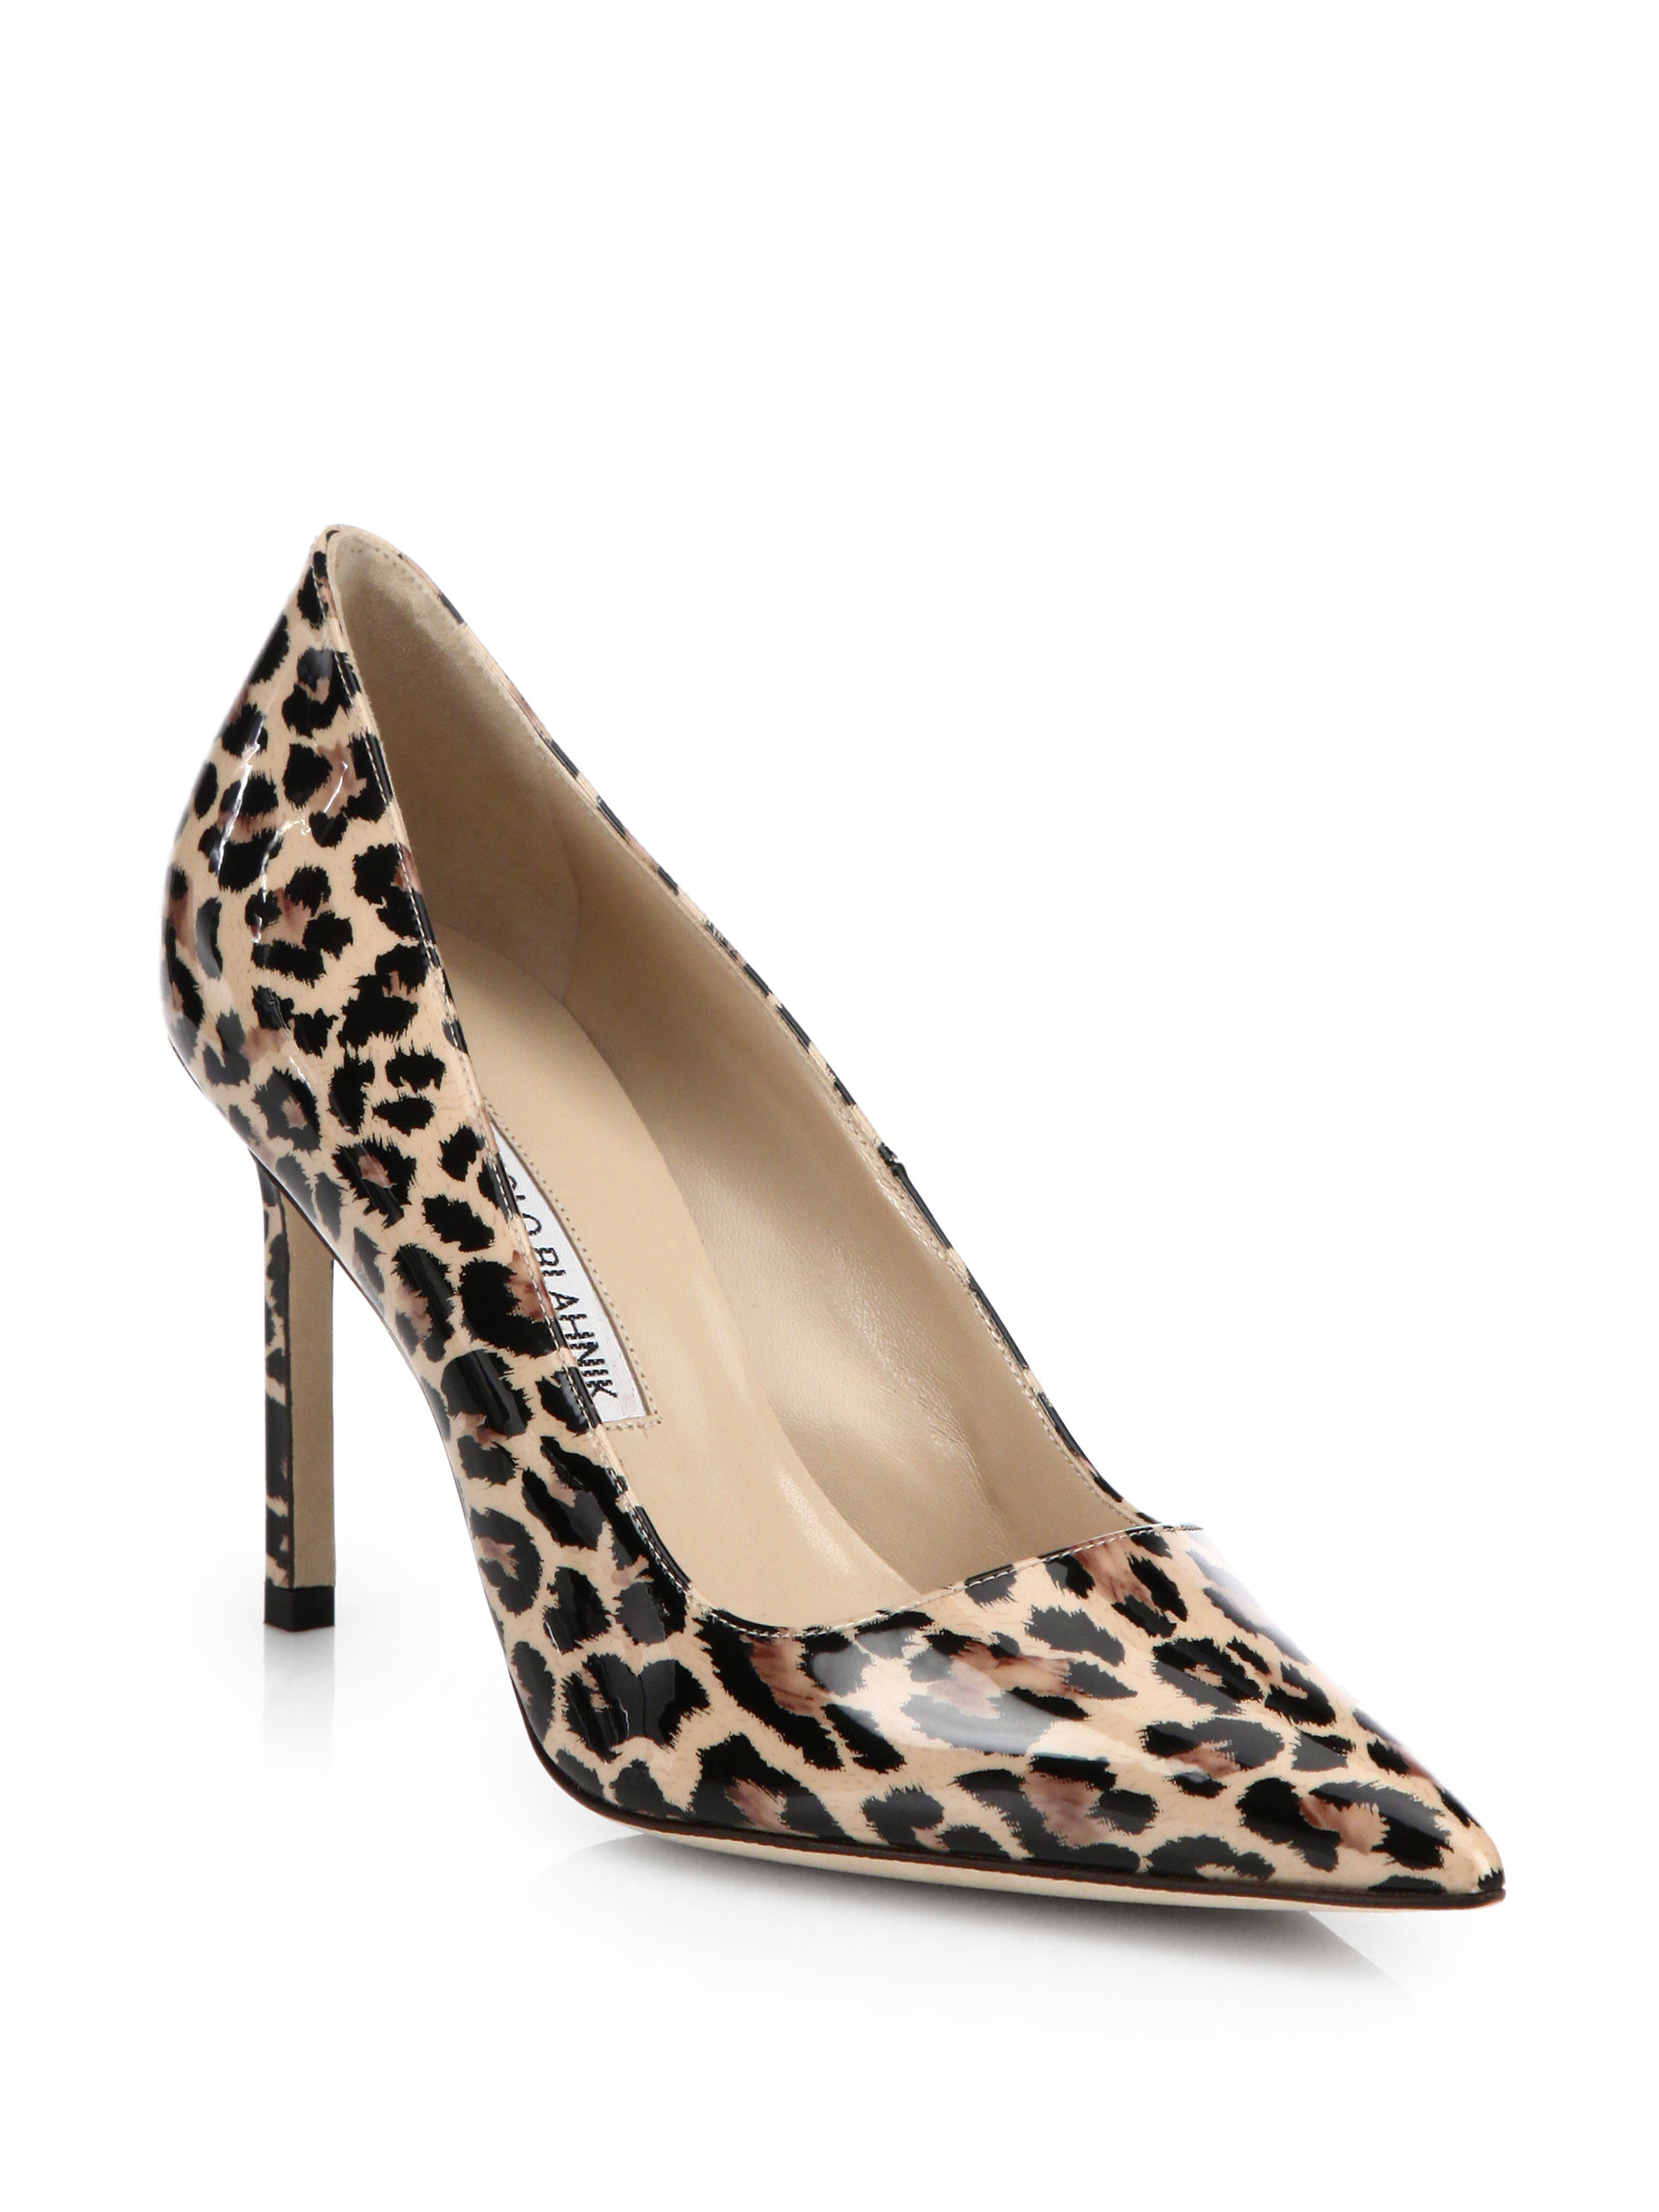 leopard manolo blahnik pumps shoes